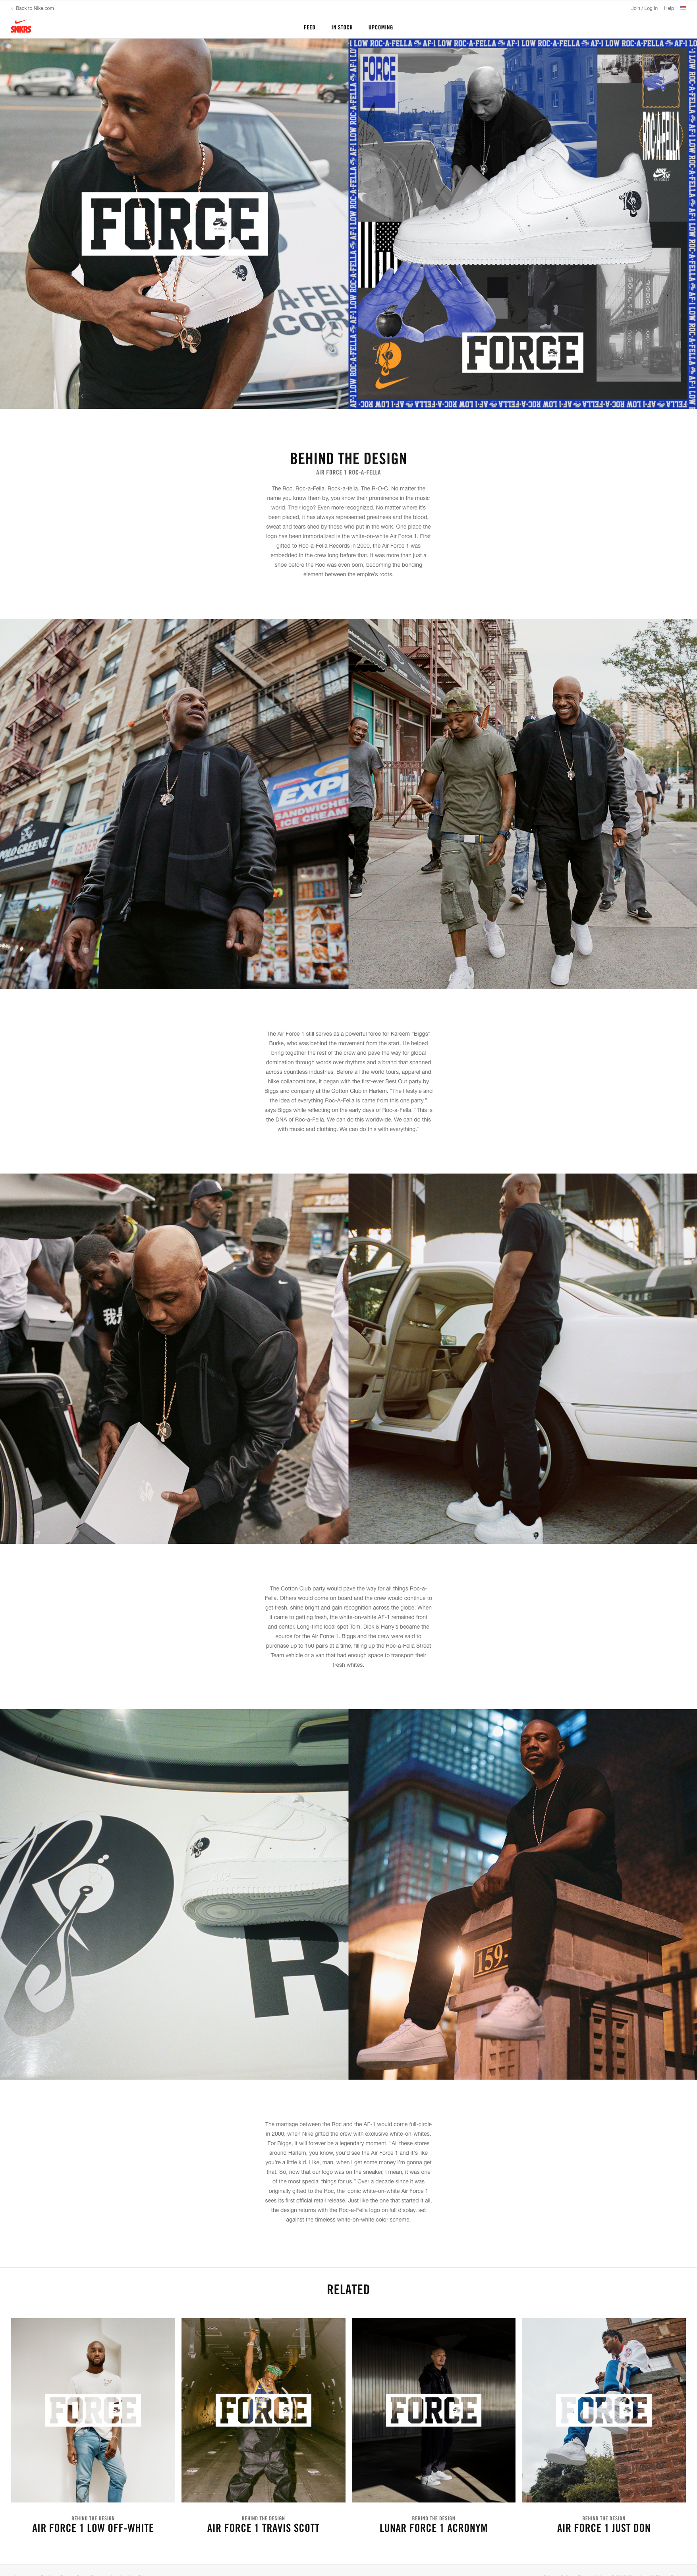 screencapture-nike-launch-t-behind-the-design-air-force-1-roc-a-fella-1510177095191.png